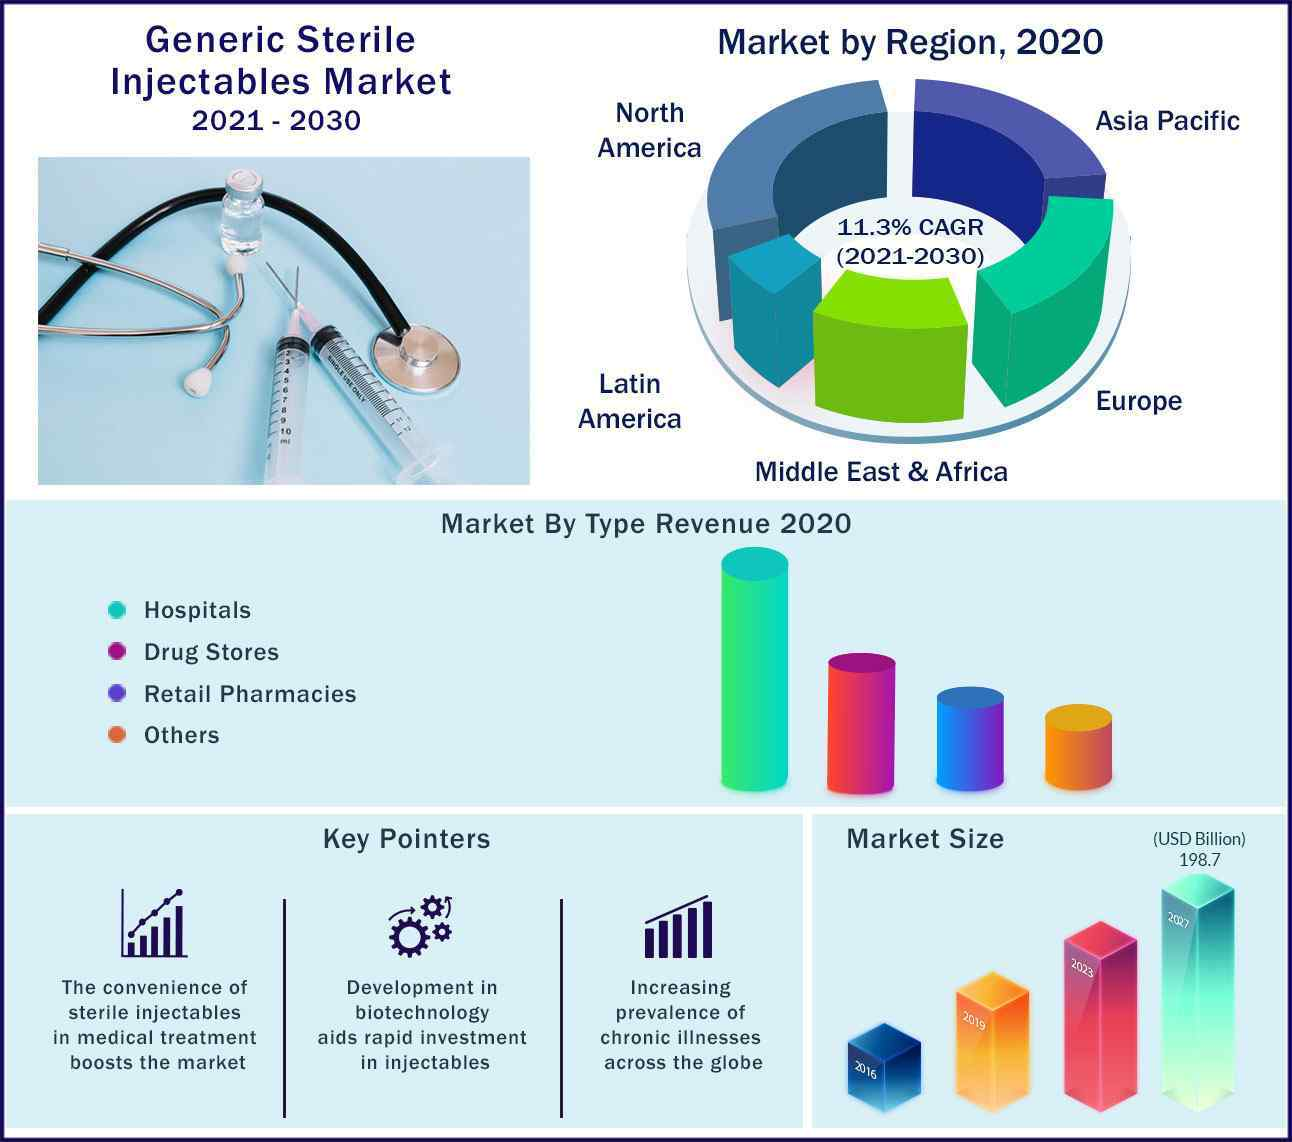 Global Generic Sterile Injectables Market 2021 to 2030